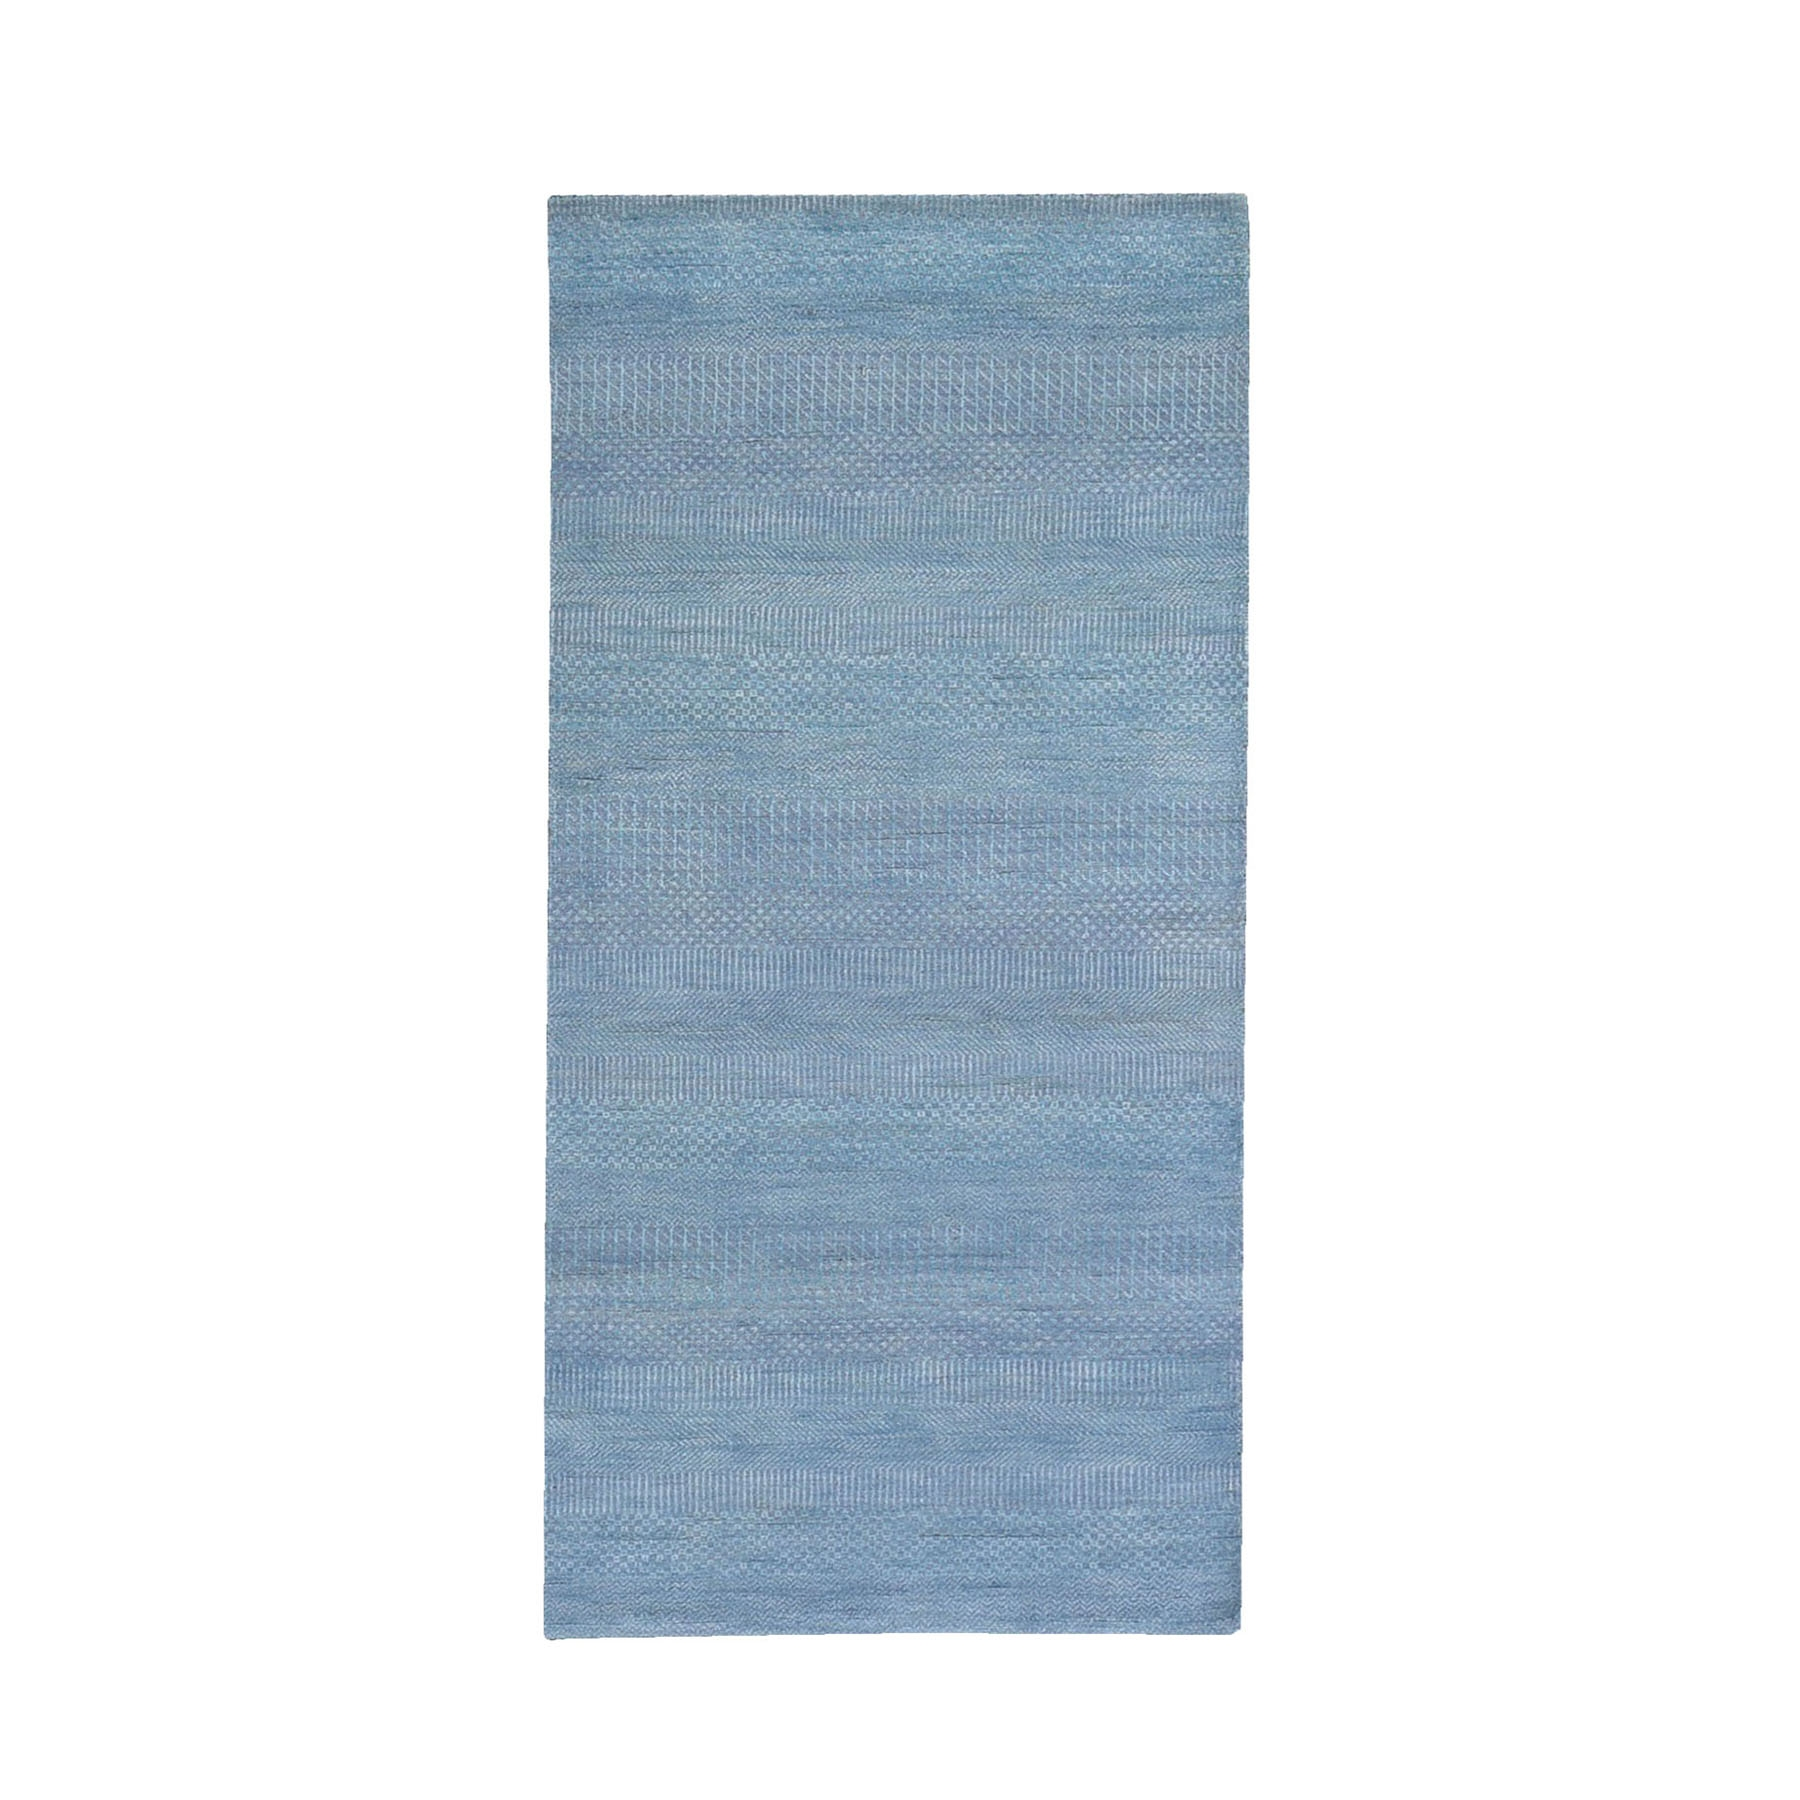 """2'9""""x6'1"""" Lavender with Touches of Blue Grass Design Wool and Silk Hand Knotted Runner Oriental Rug"""